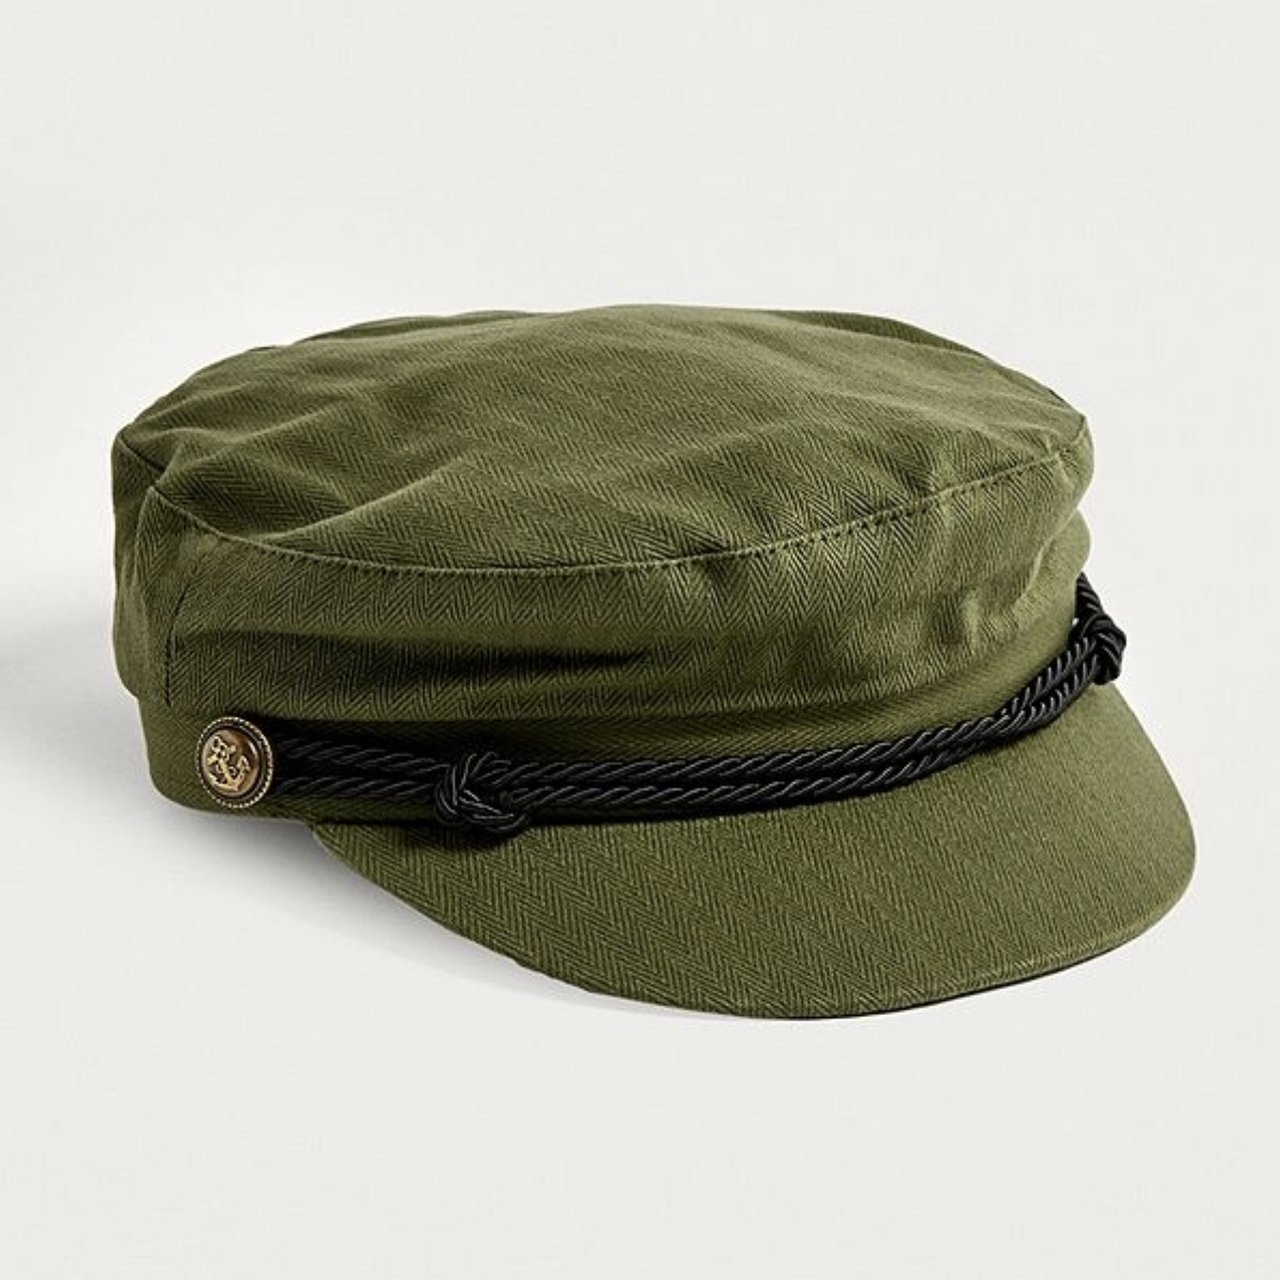 URBAN OUTFITTERS KHAKI BAKER BOY CAP   perfect condition     - Depop 2932a8acdcc5